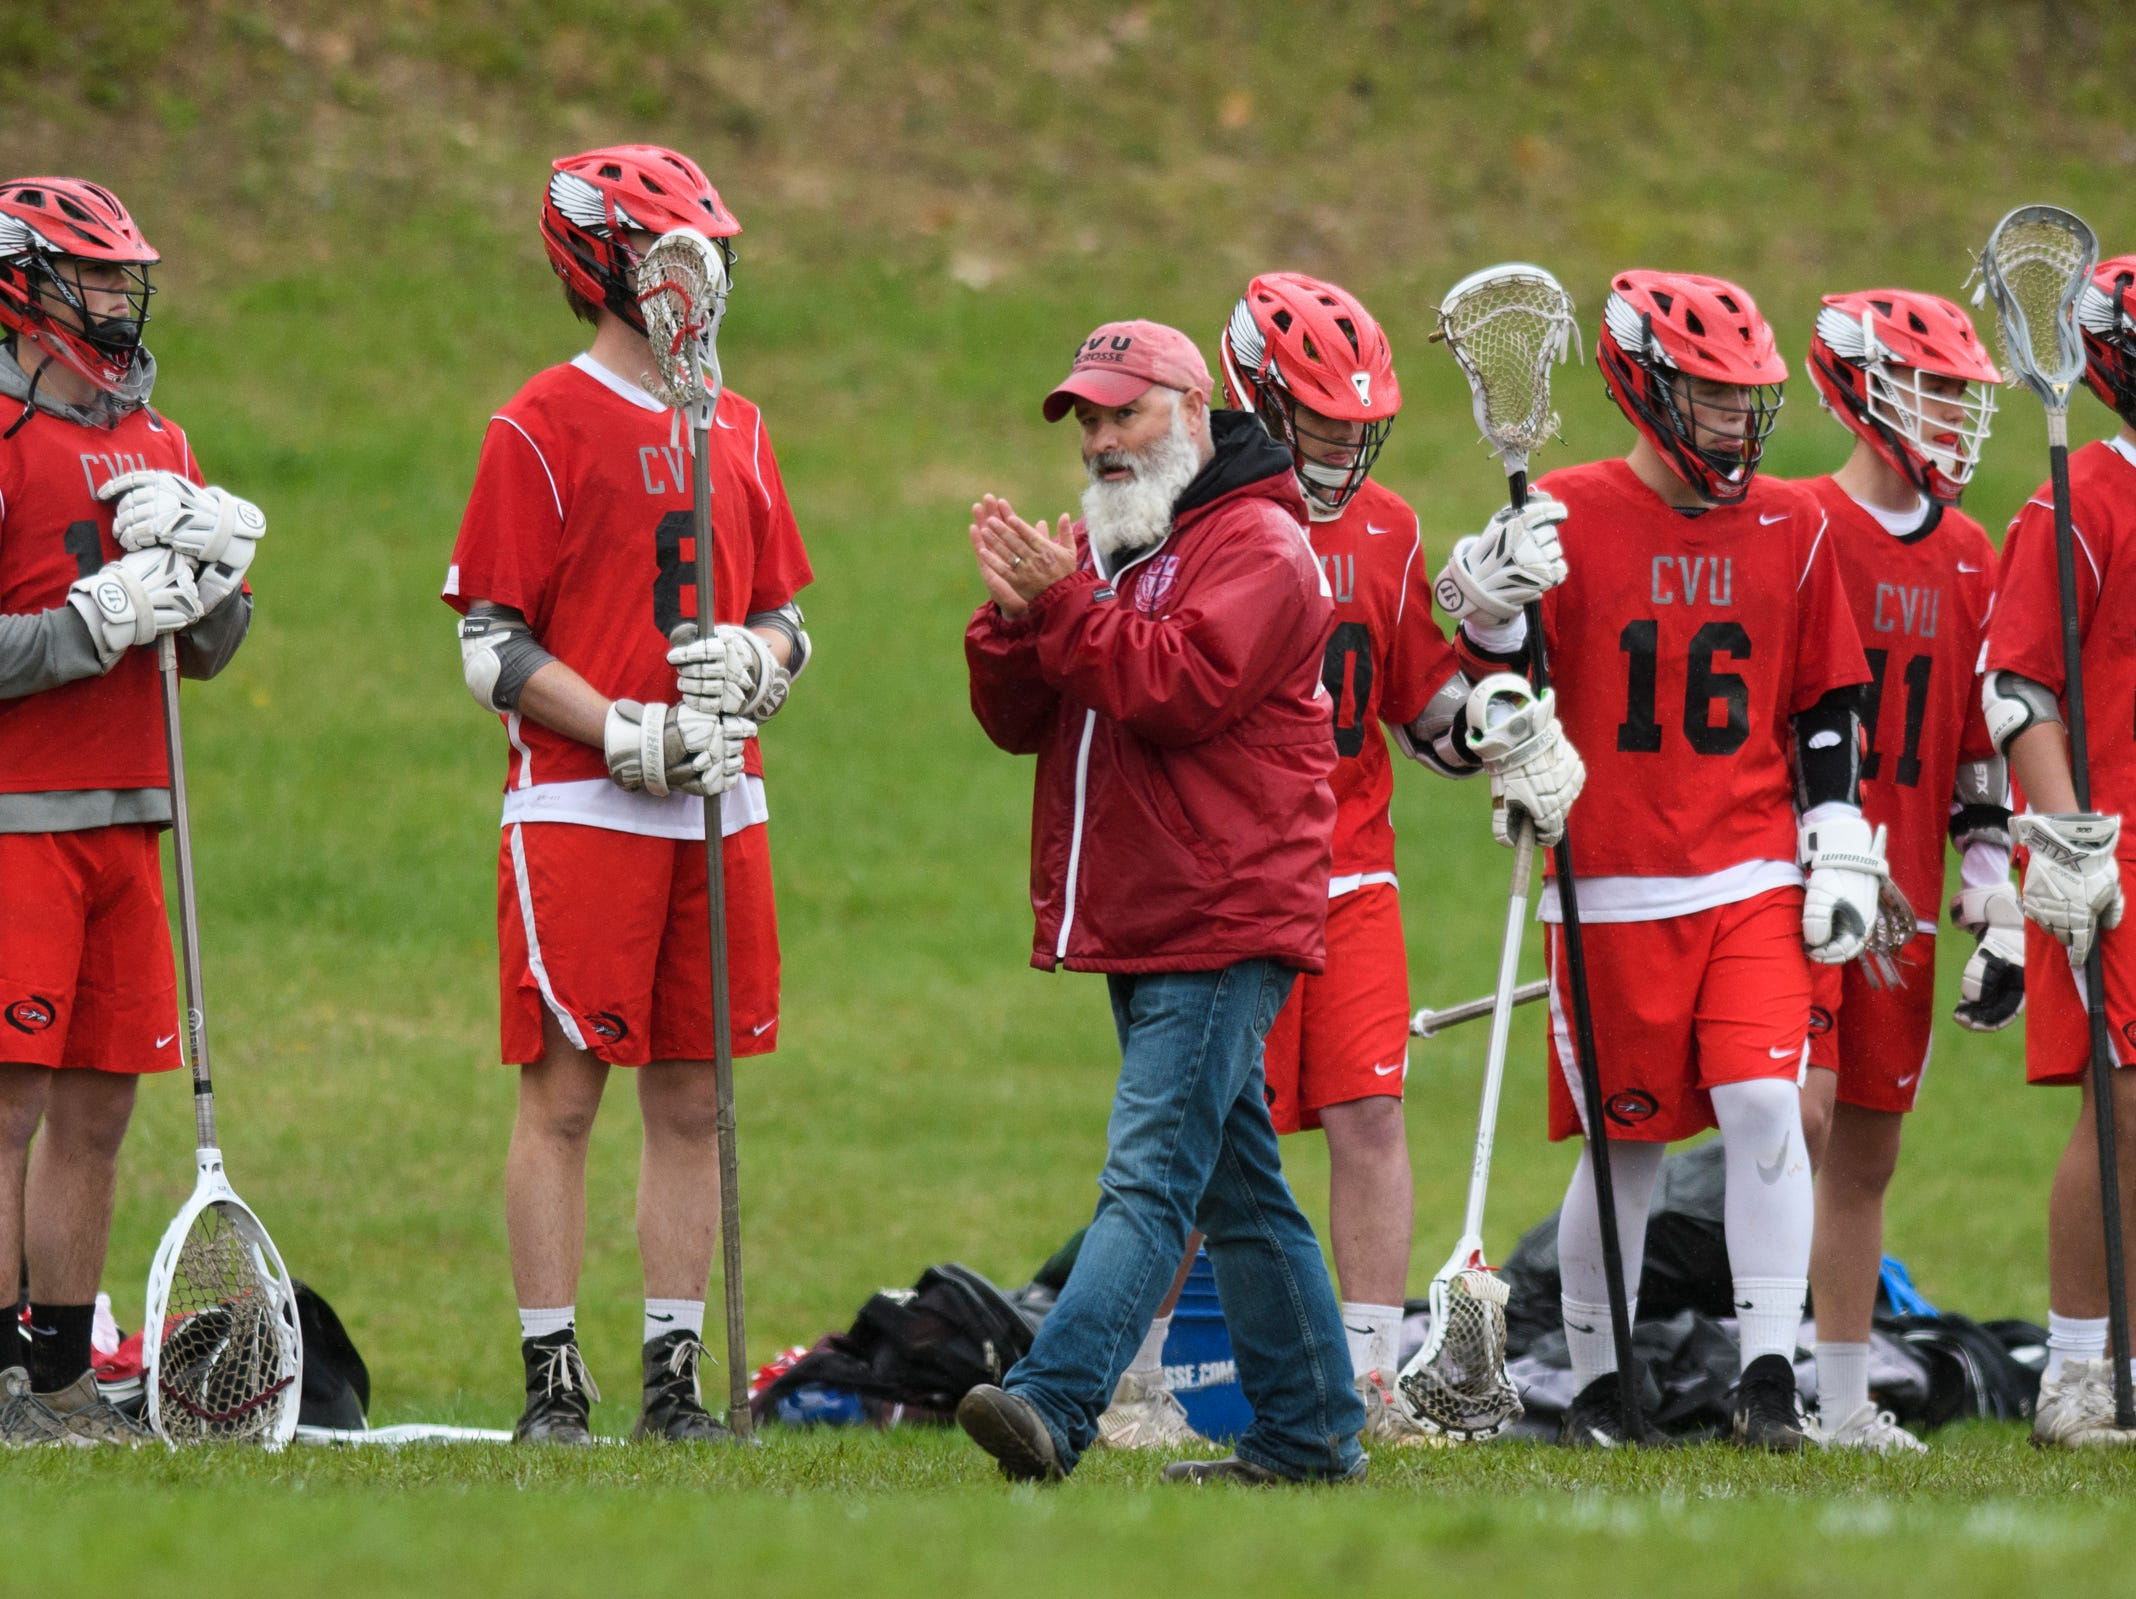 CVU head coach Dave Trevithick cheers for the team during the boys lacrosse game between the Champlain Valley Union Redhawks and the Mount Mansfield Cougars at MMU High School on Tuesday afternoon May 14, 2019 in Jericho, Vermont.